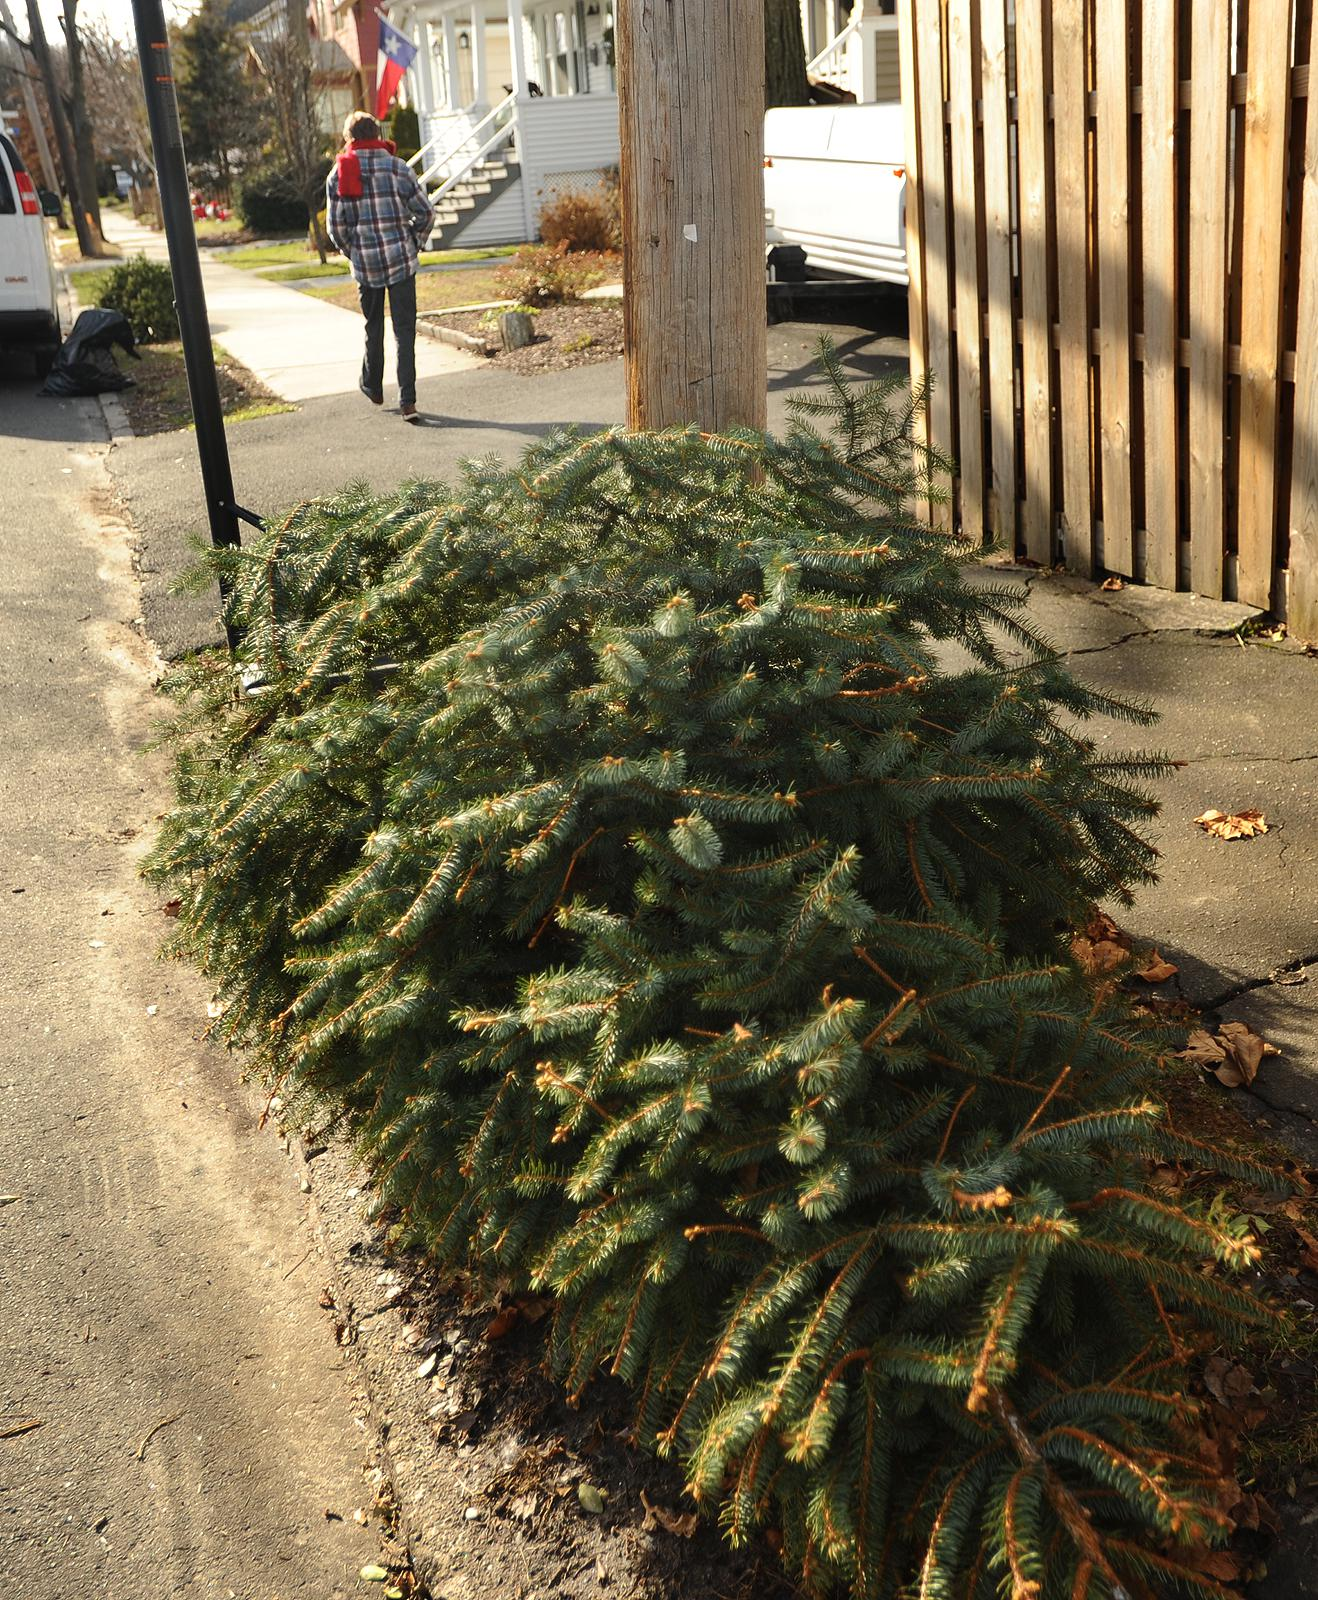 Local Christmas Trees: Christmas Trees To Be Collected In Redding